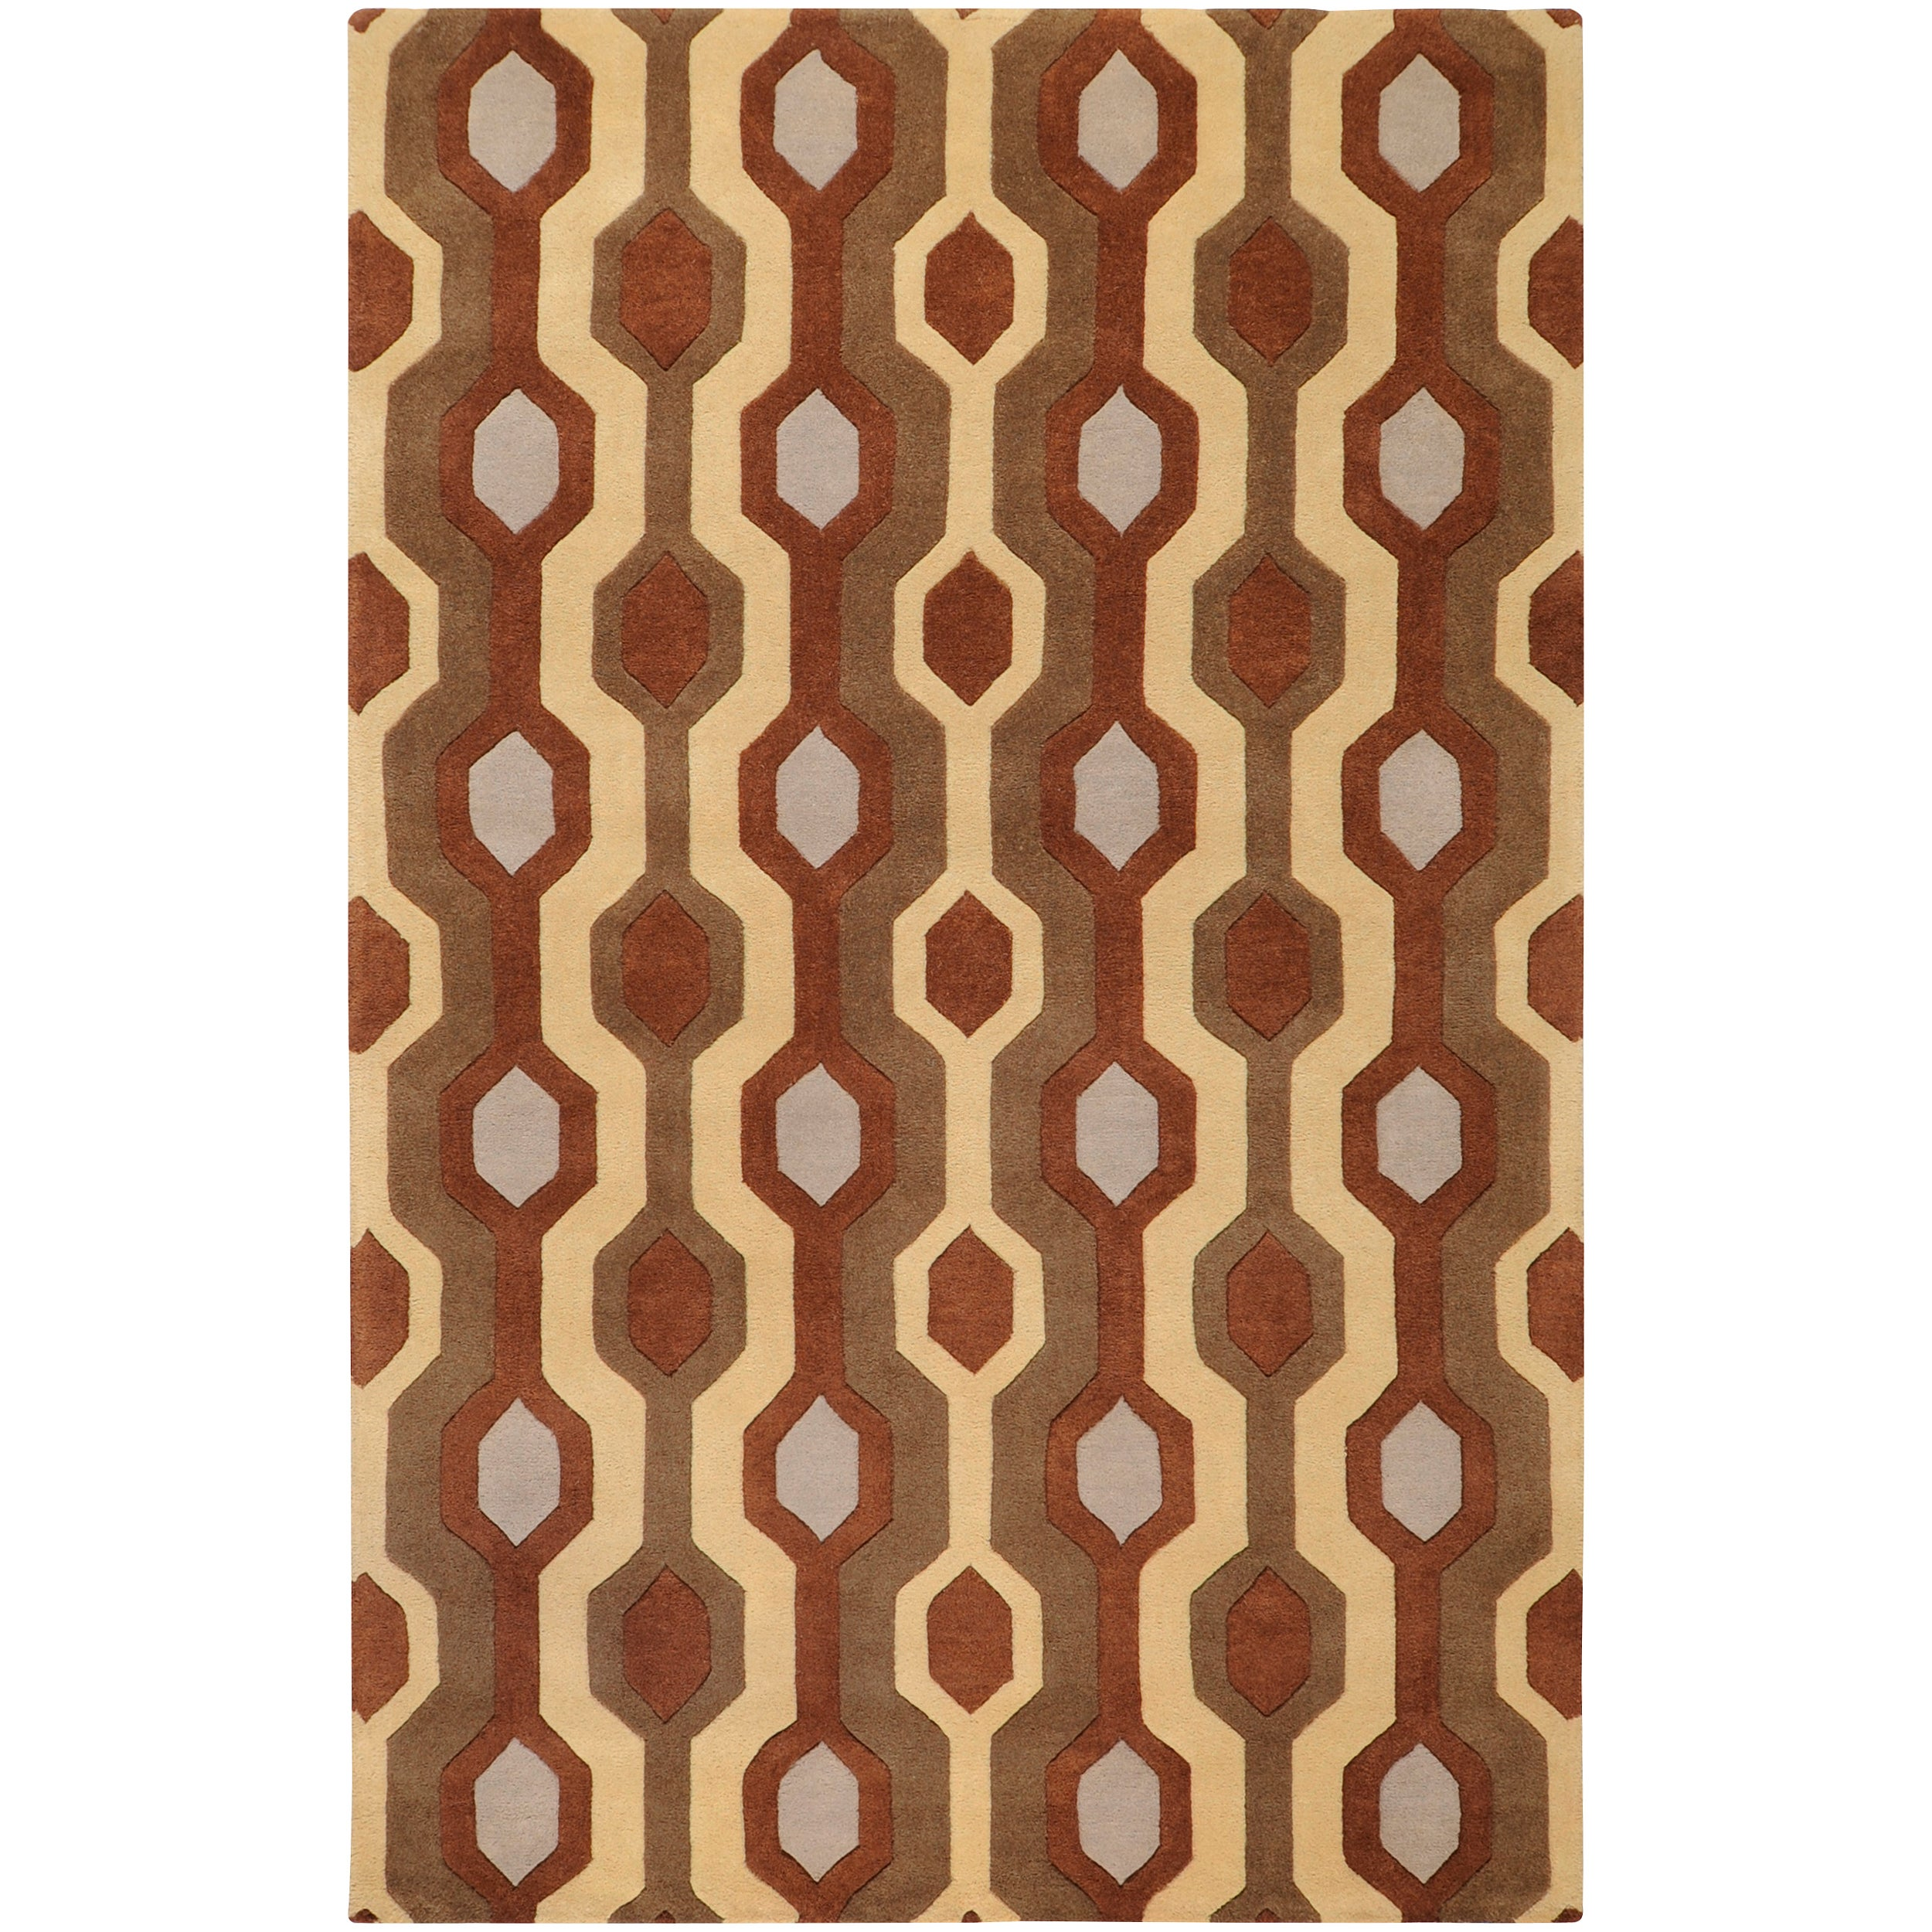 Hand-tufted Brown Contemporary Breaux Wool Geometric Rug (9' x 12')